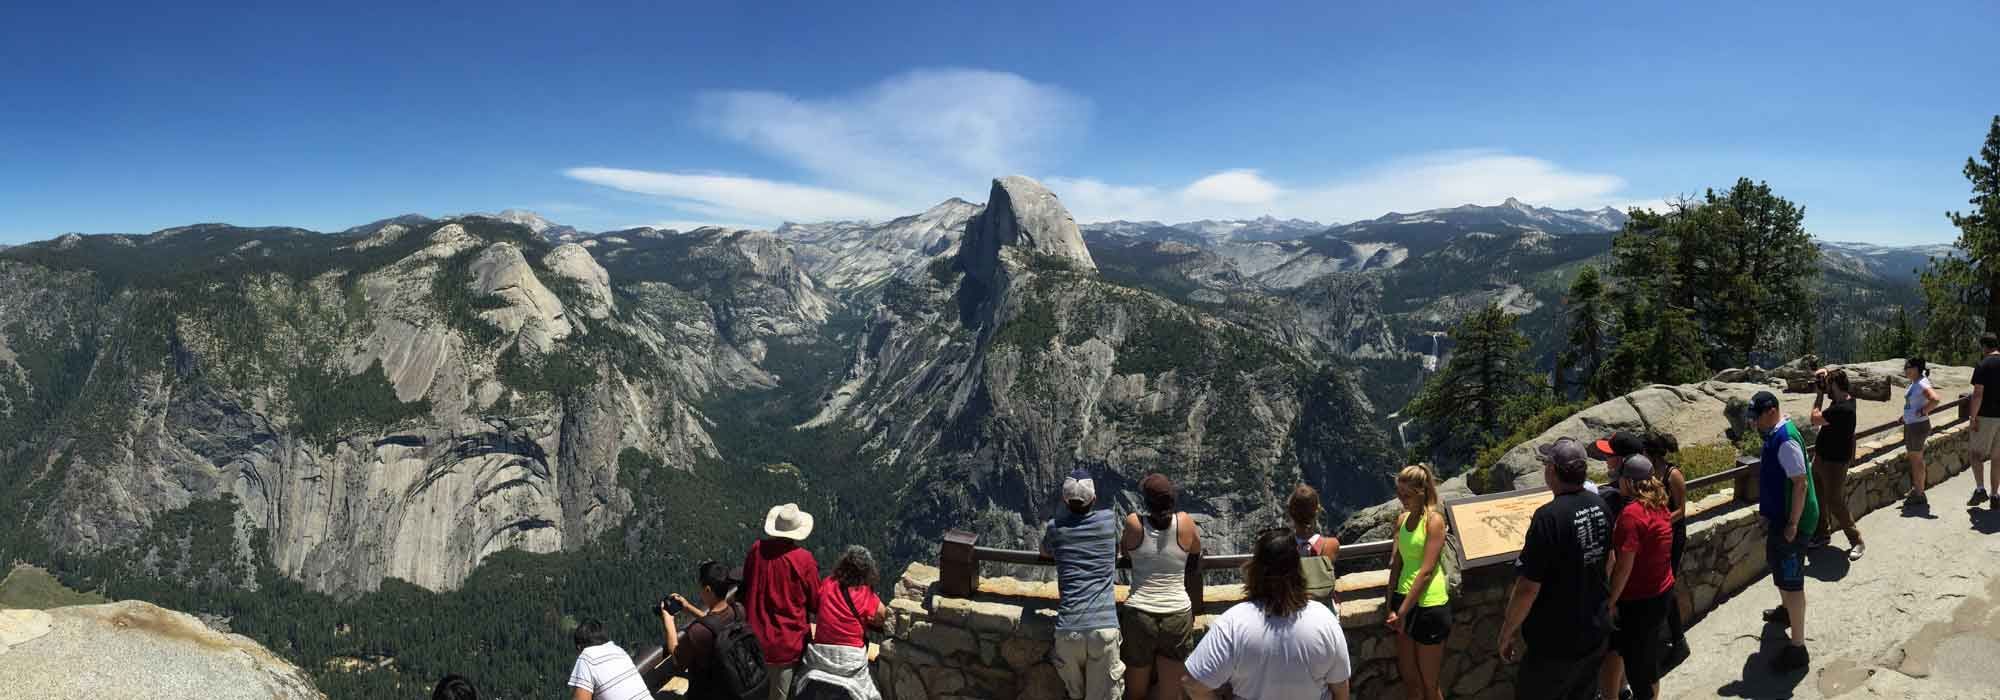 Yosemite National Park Tours From Fresno